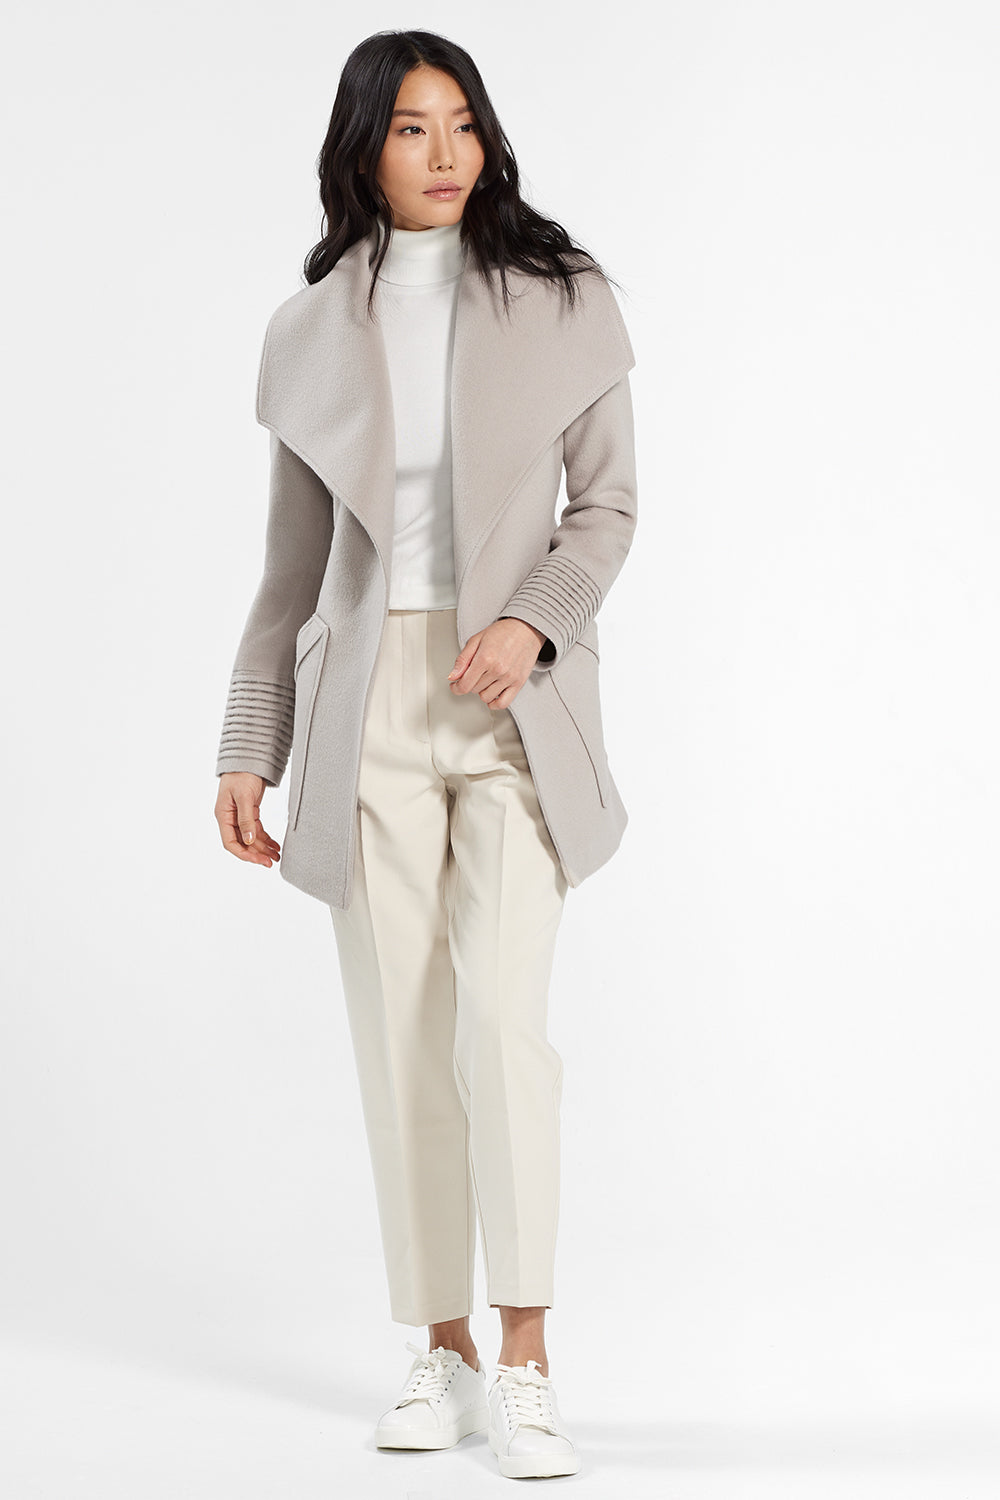 Sentaler Cropped Wide Collar Wrap Coat featured in Baby Alpaca and available in Bleeker Beige. Seen open.